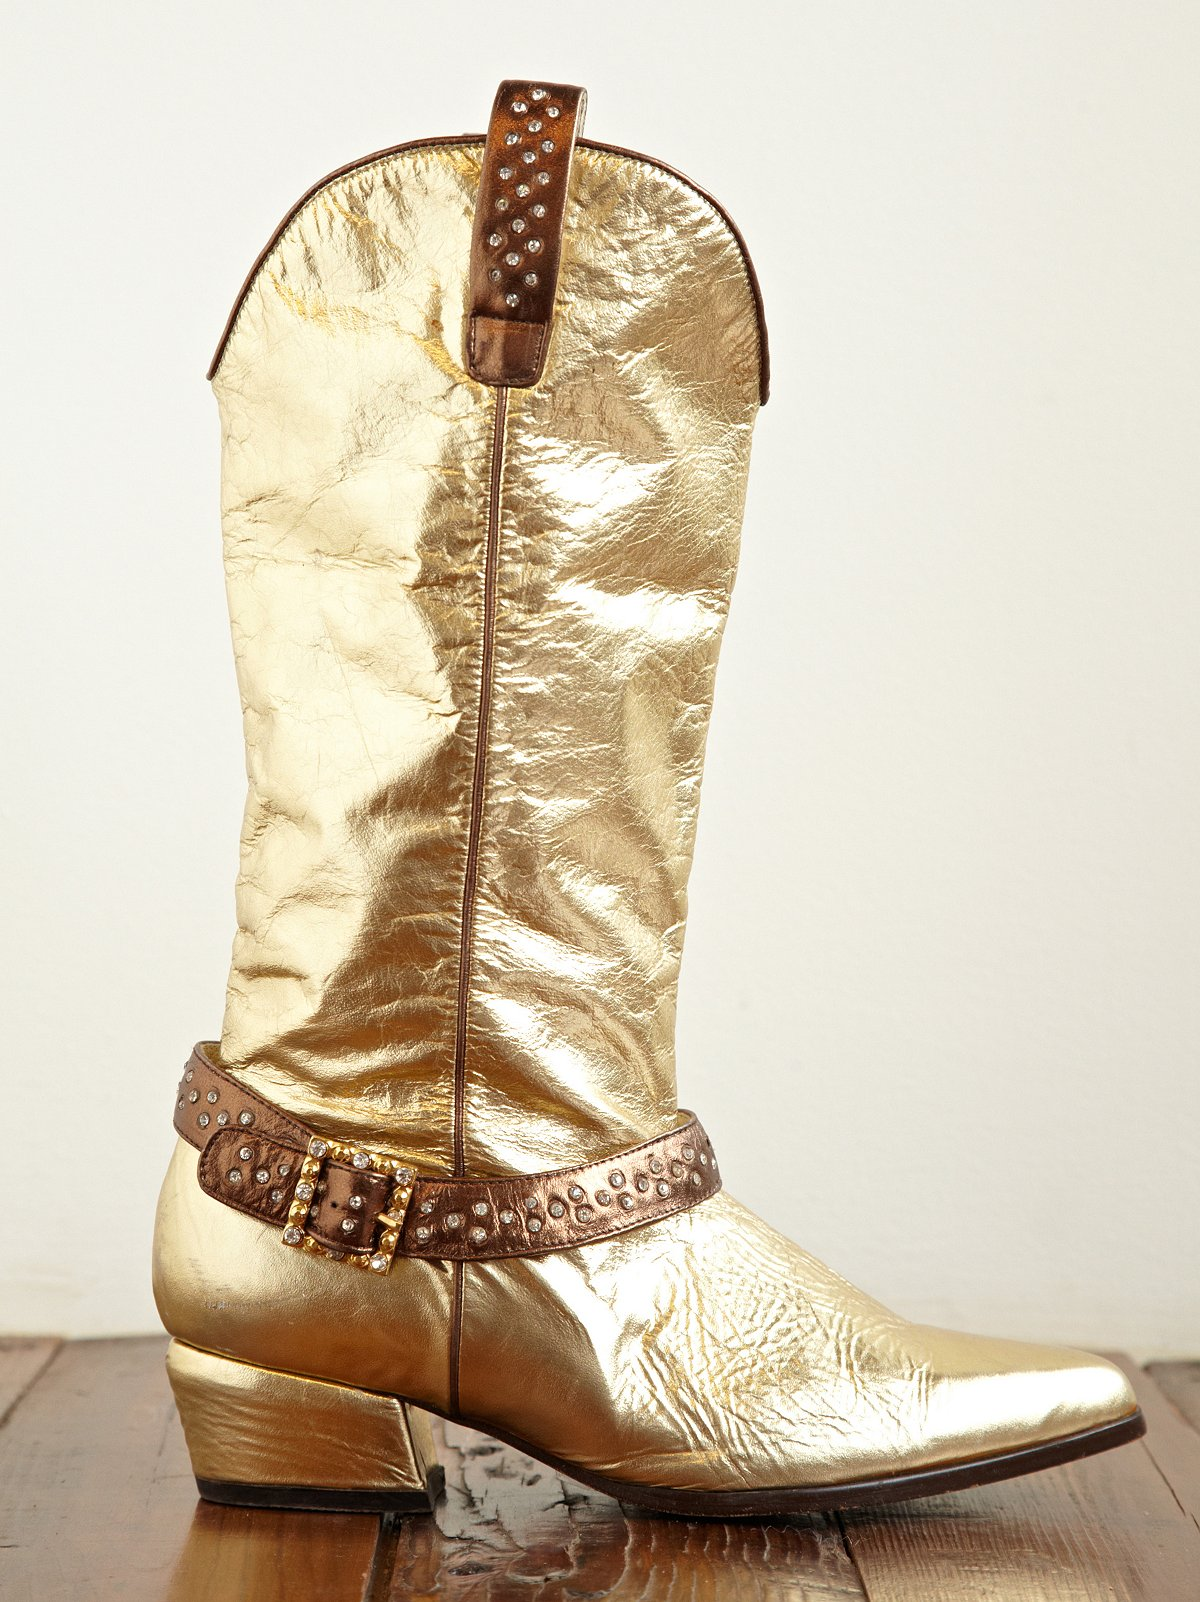 Vintage Studded Cowboy Boots